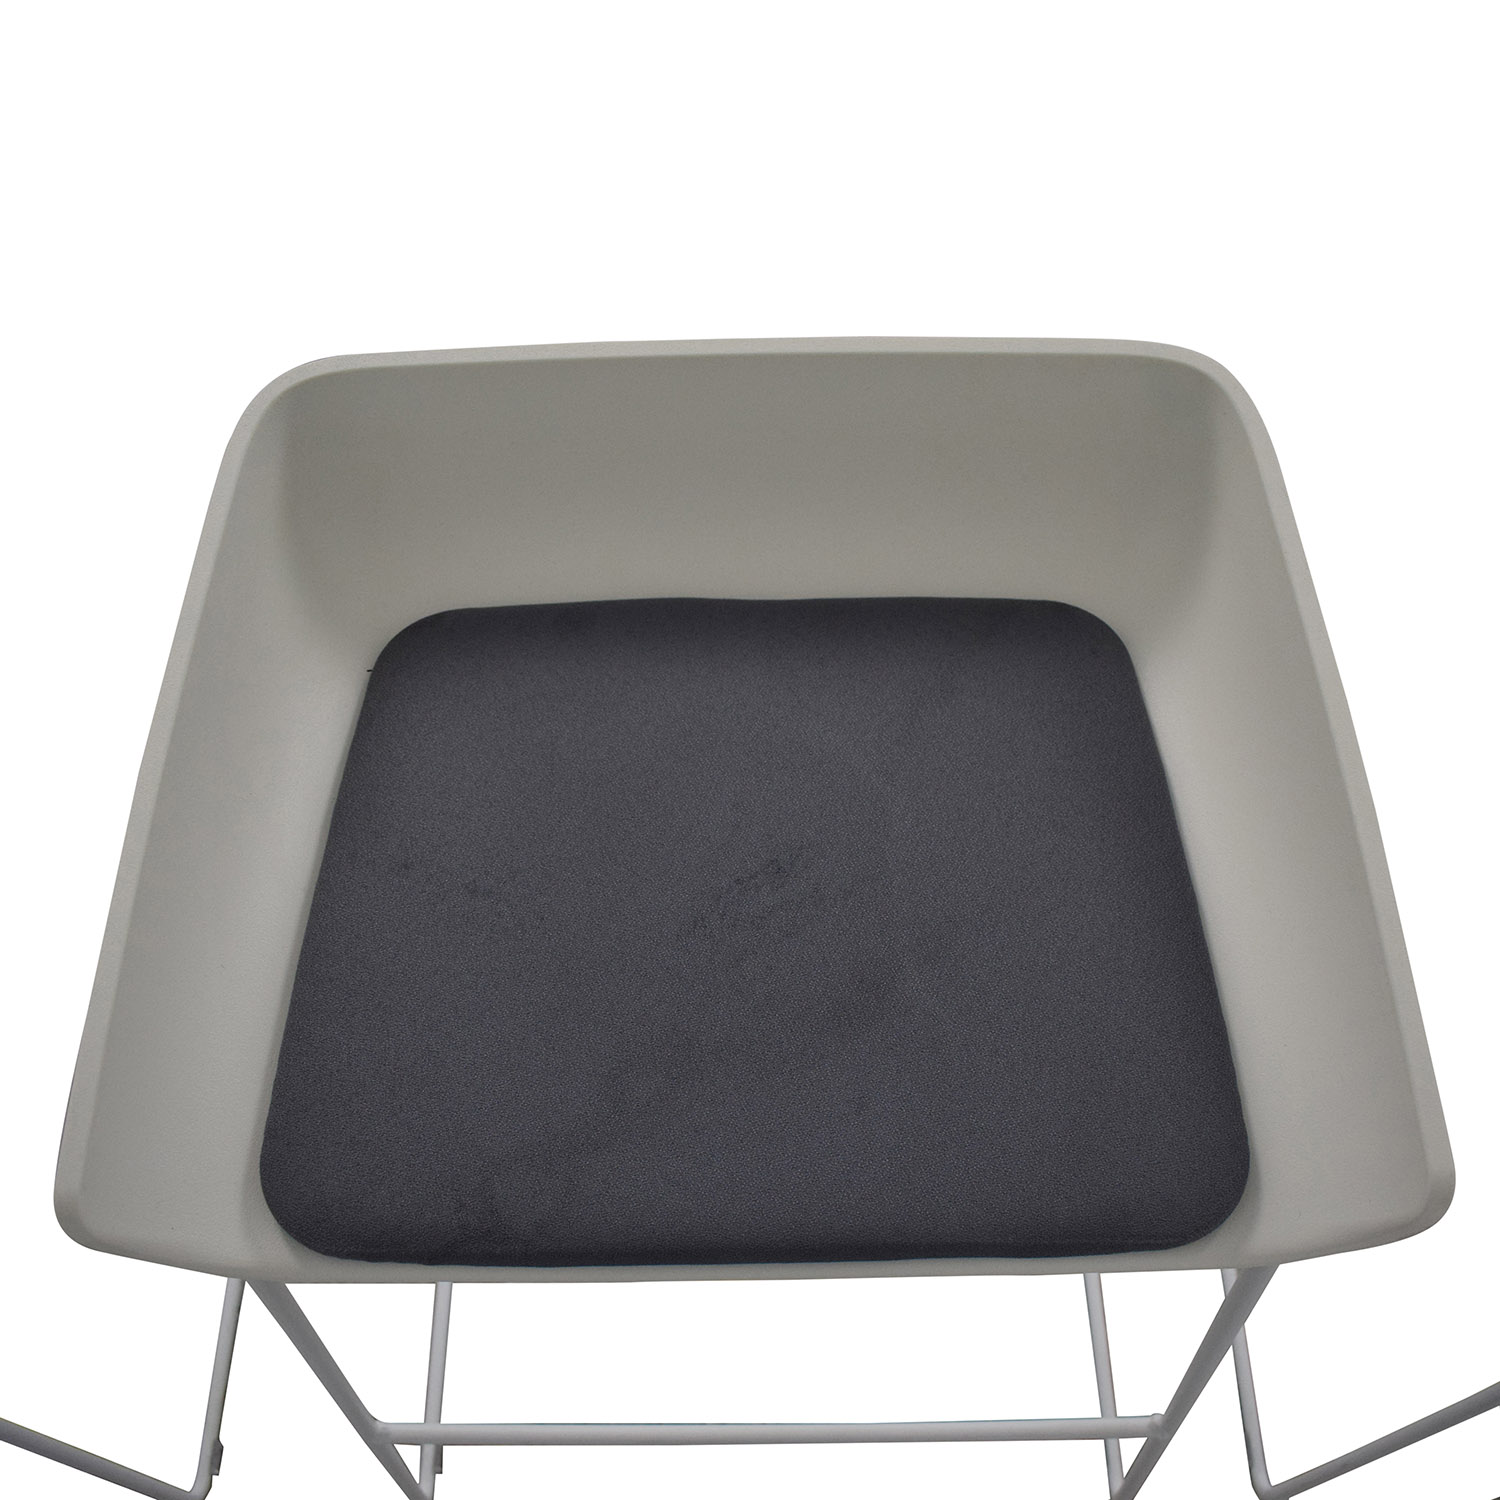 Steelcase Steelcase Scoop Modern Stools for sale